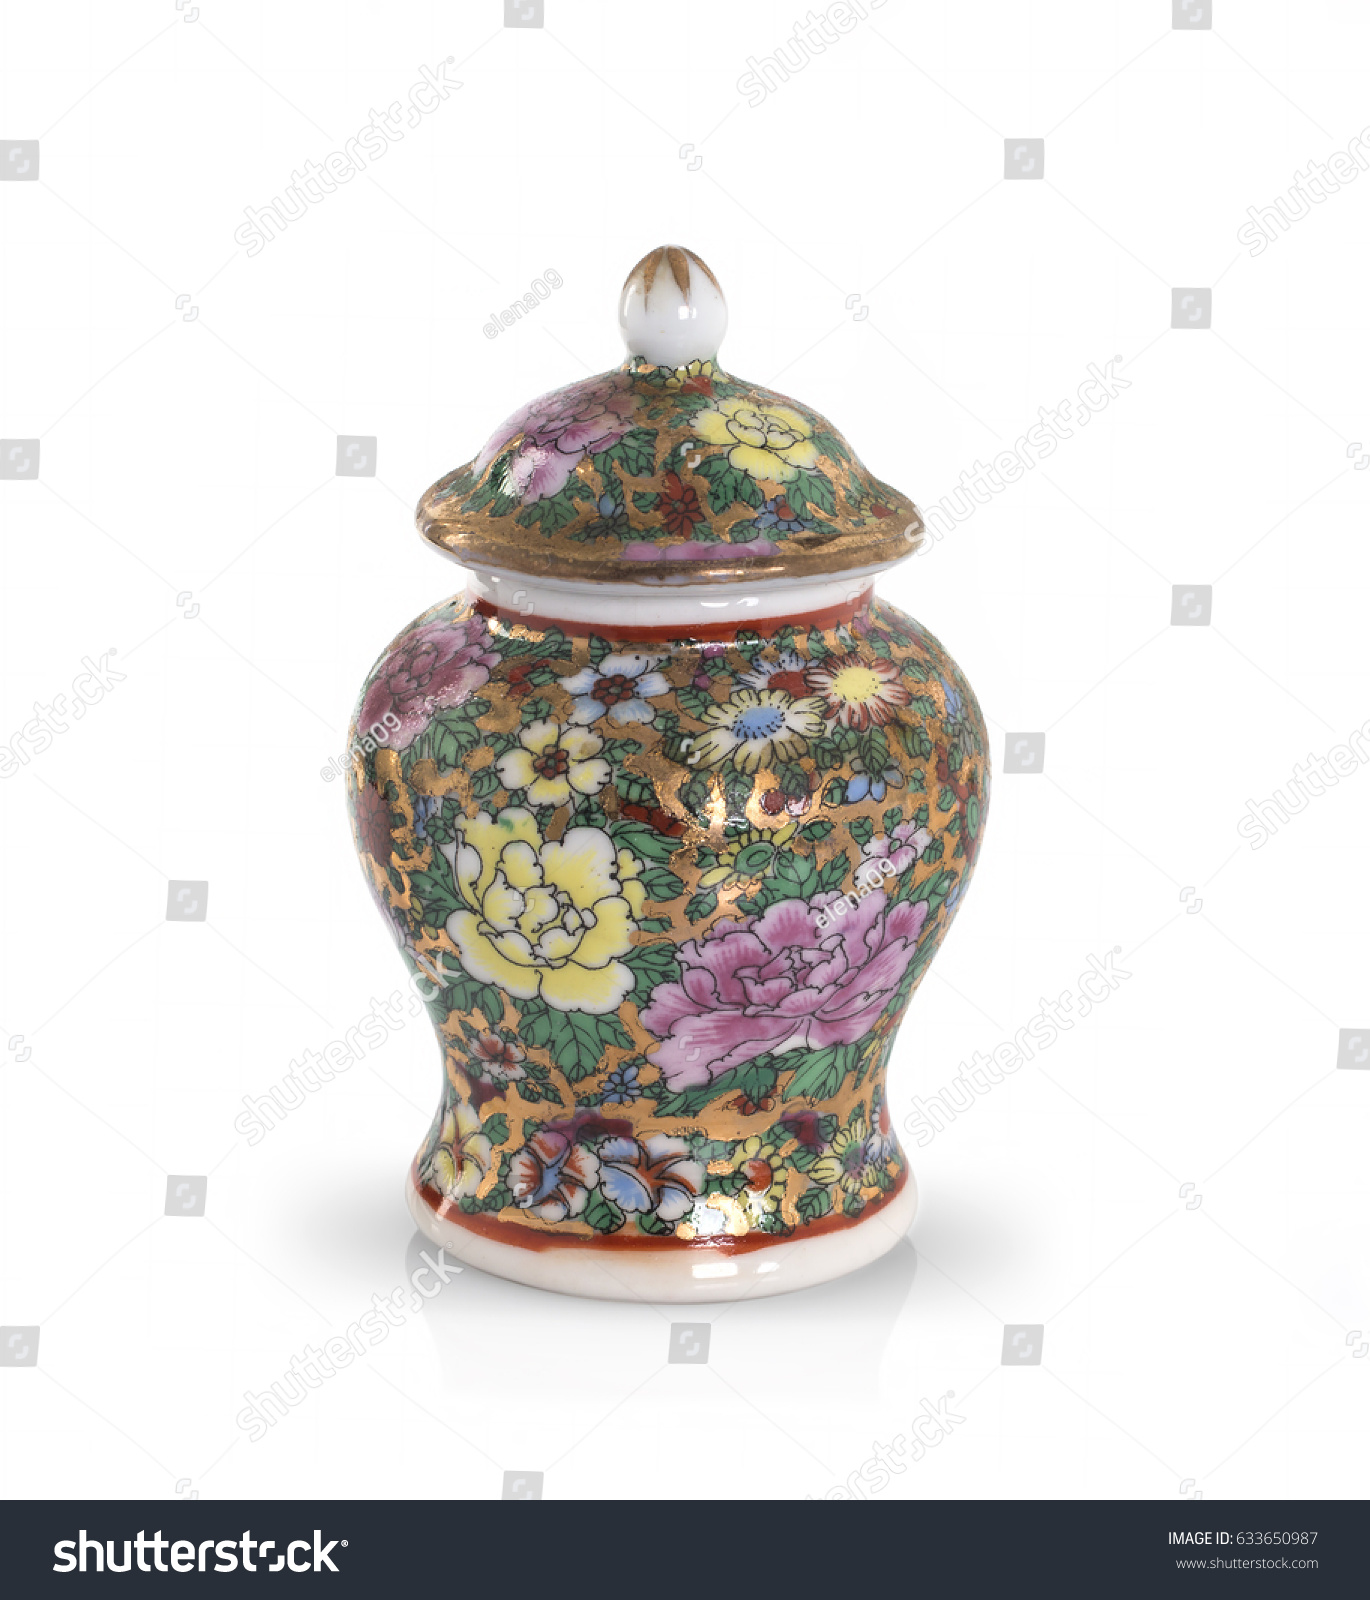 Old chinese vase image collections vases design picture old chinese vase on white background stock photo 633650987 old chinese vase on white background reviewsmspy reviewsmspy